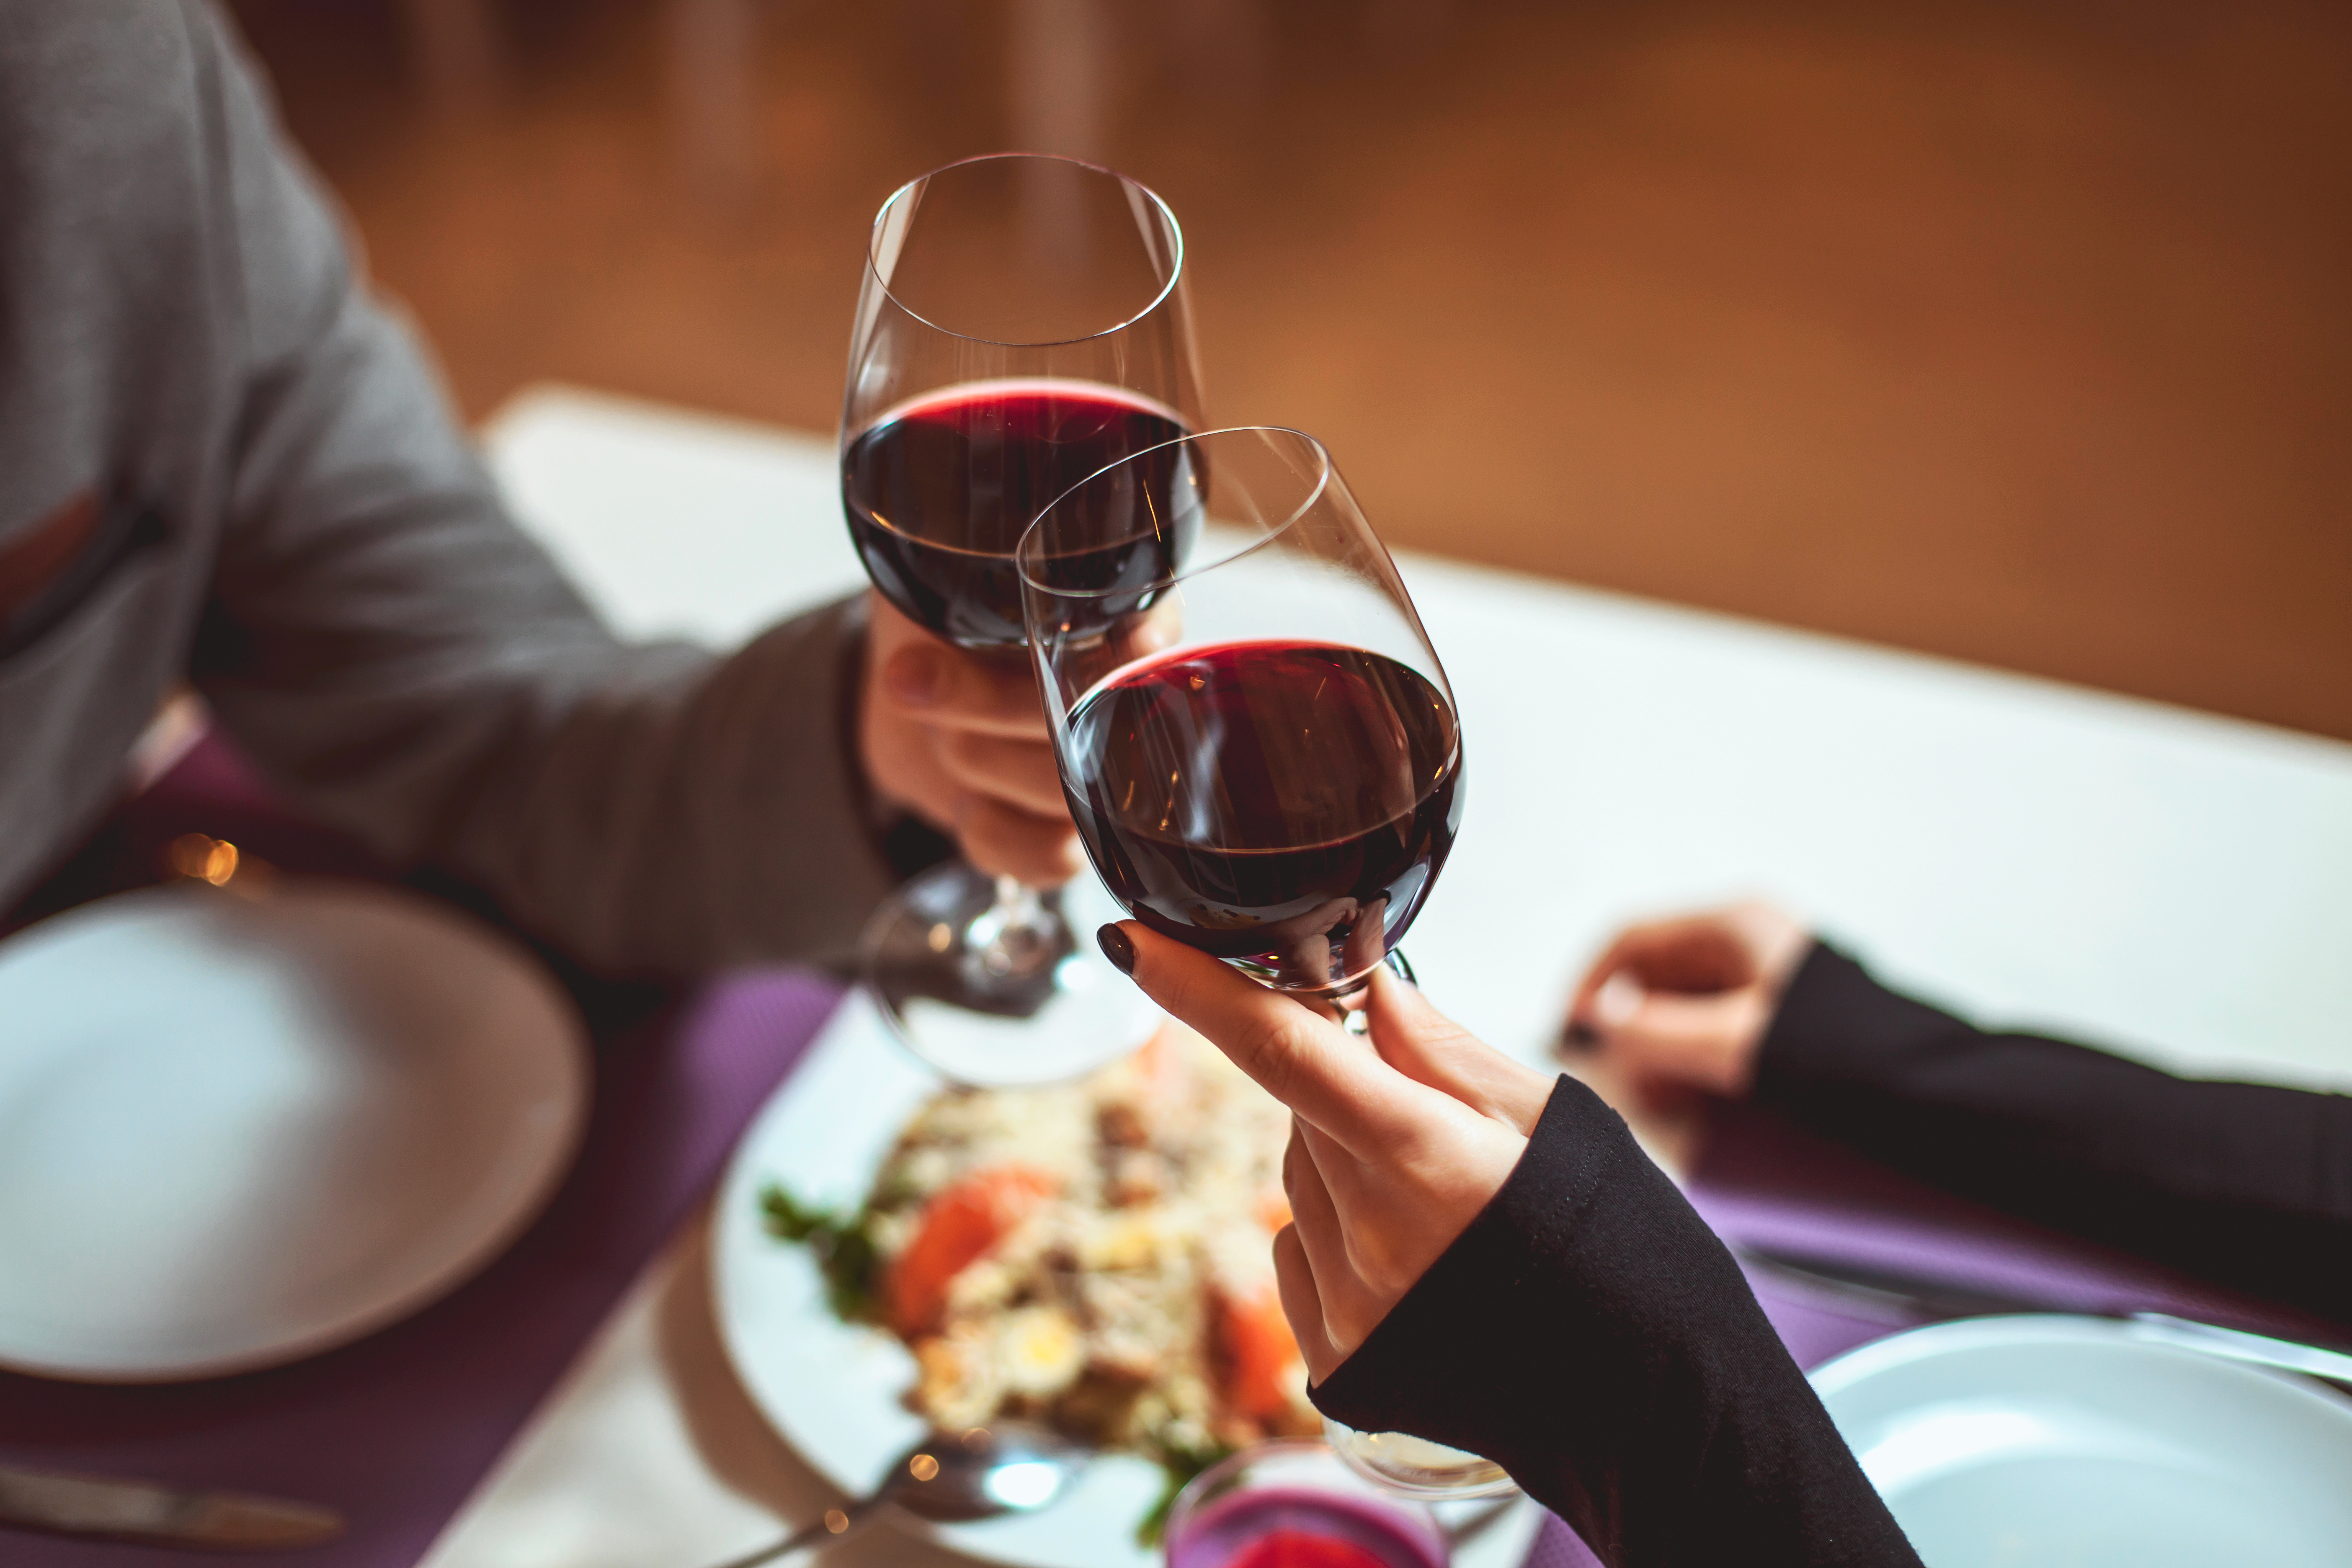 Two people share two glasses of red wine over a plate of food at a restaurant.